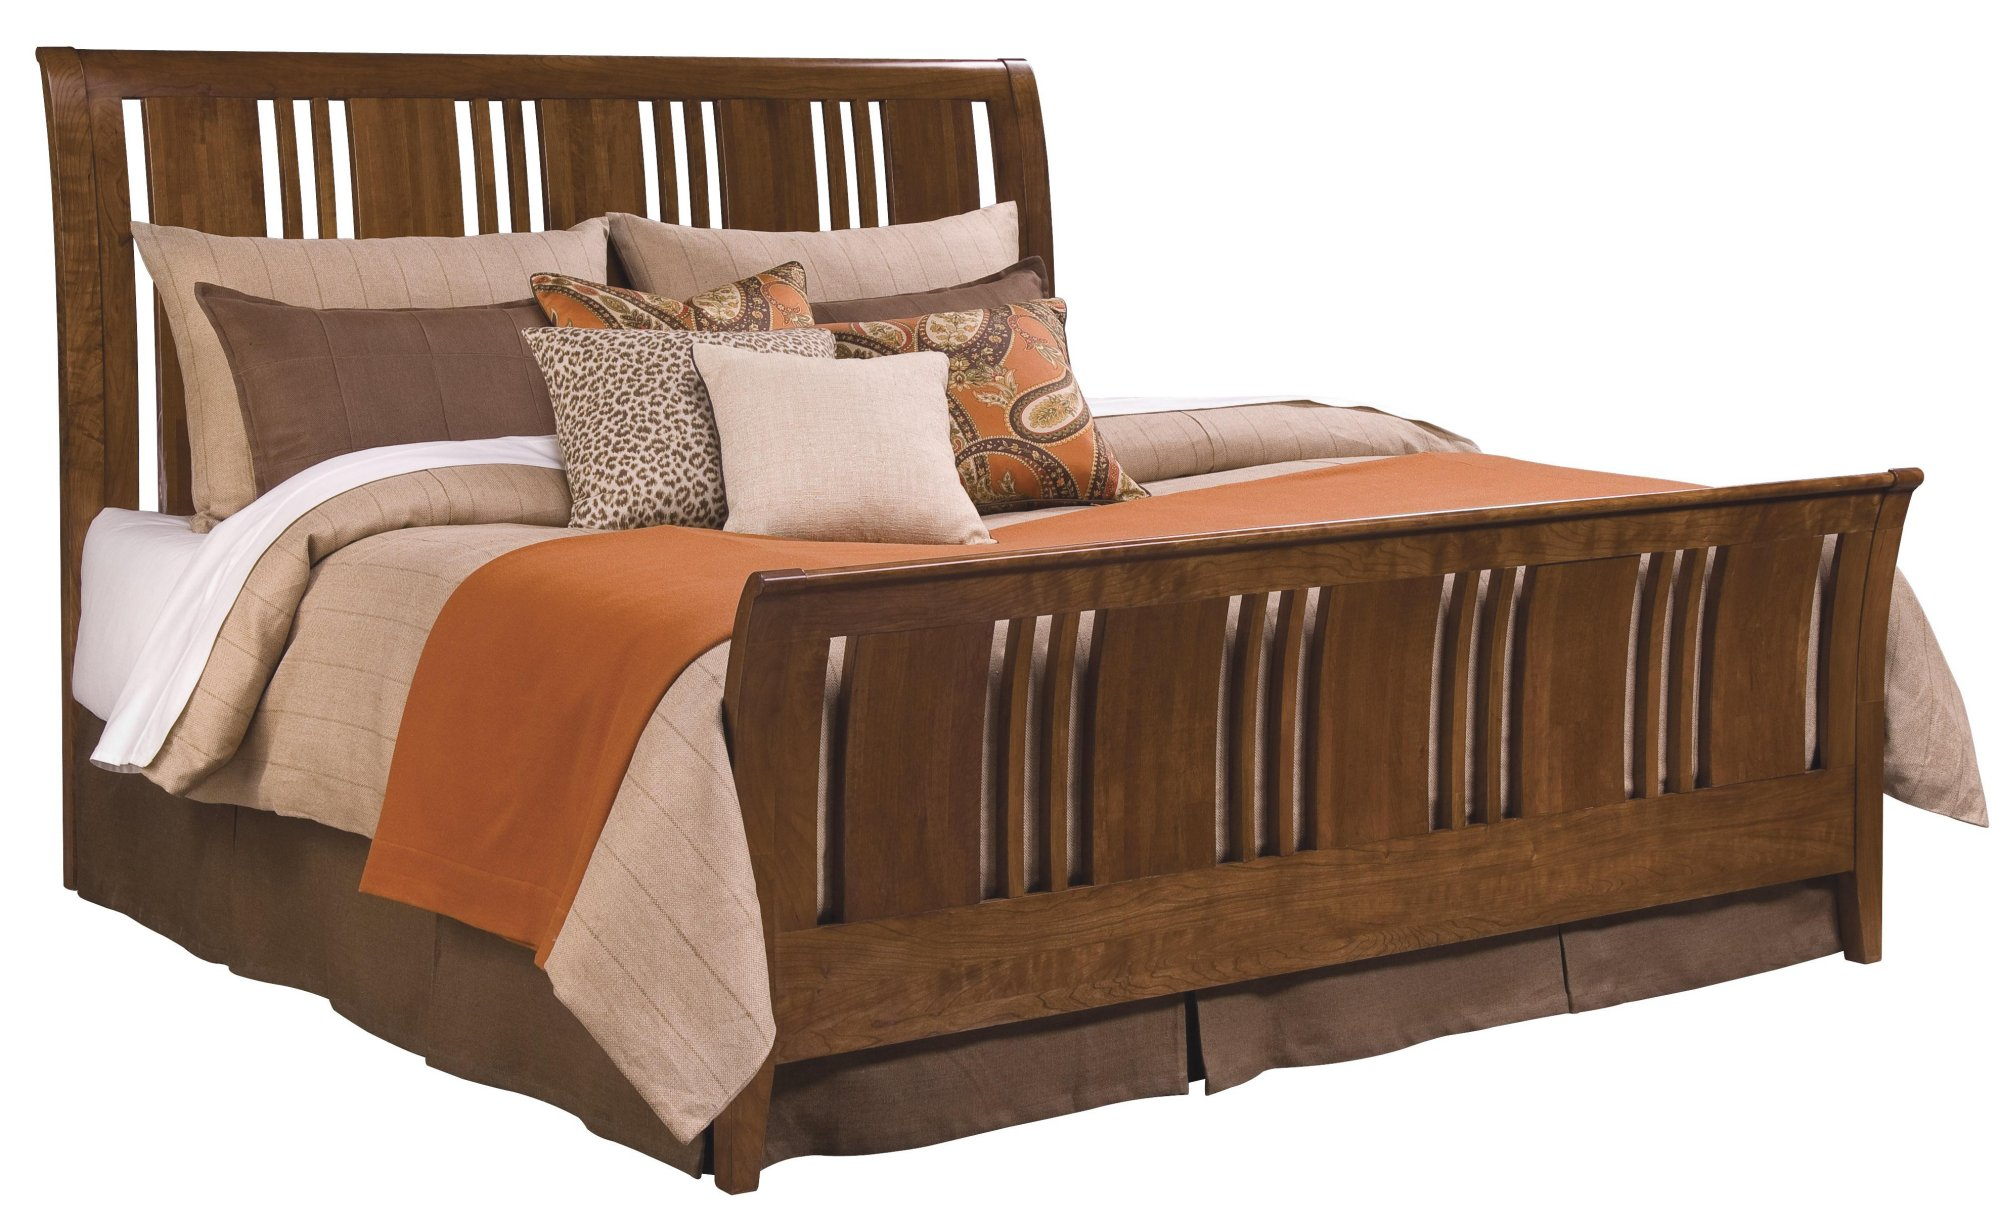 Feel Ultimate Comfort with Cherry Wood Sleigh Bed Series ...